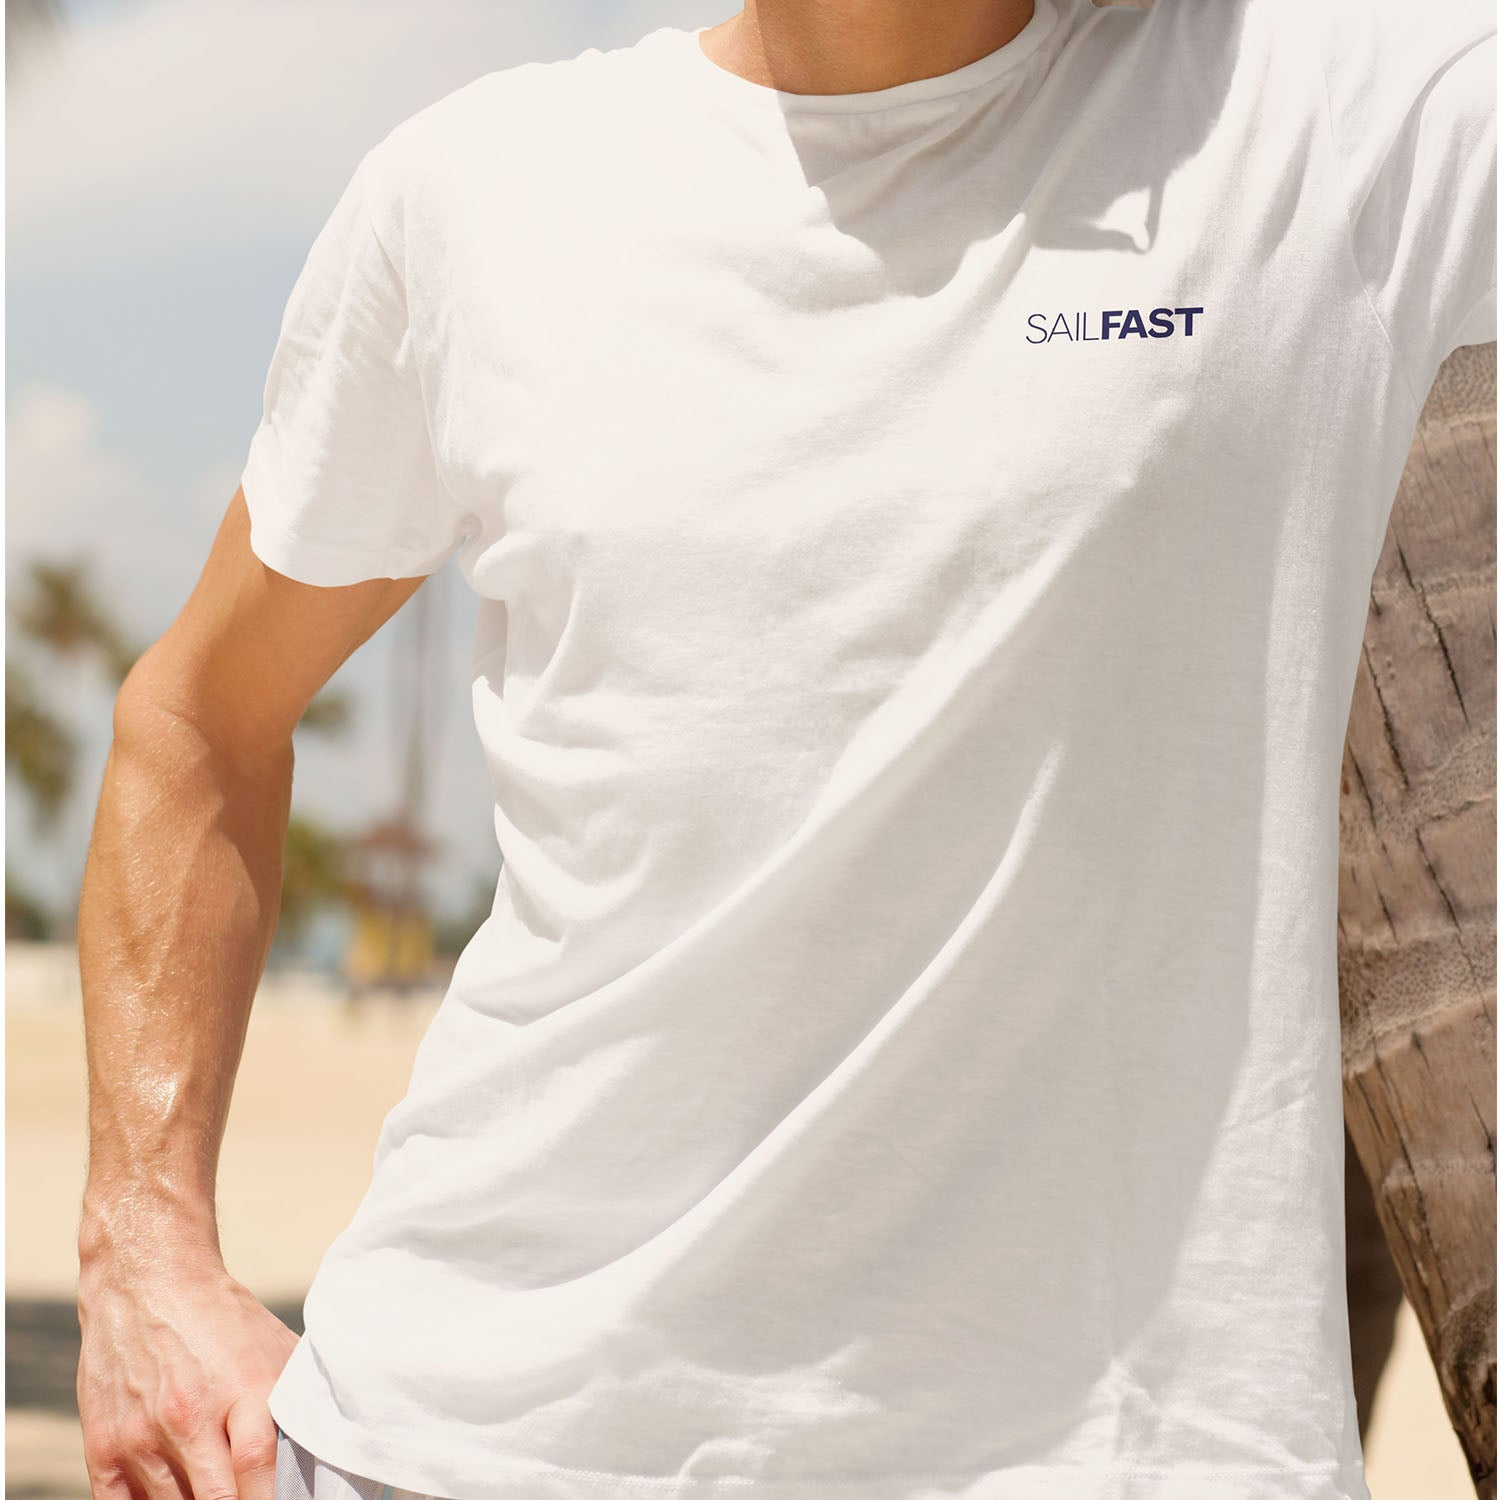 https://sailfast-apparel.myshopify.com/admin/products/9233303442